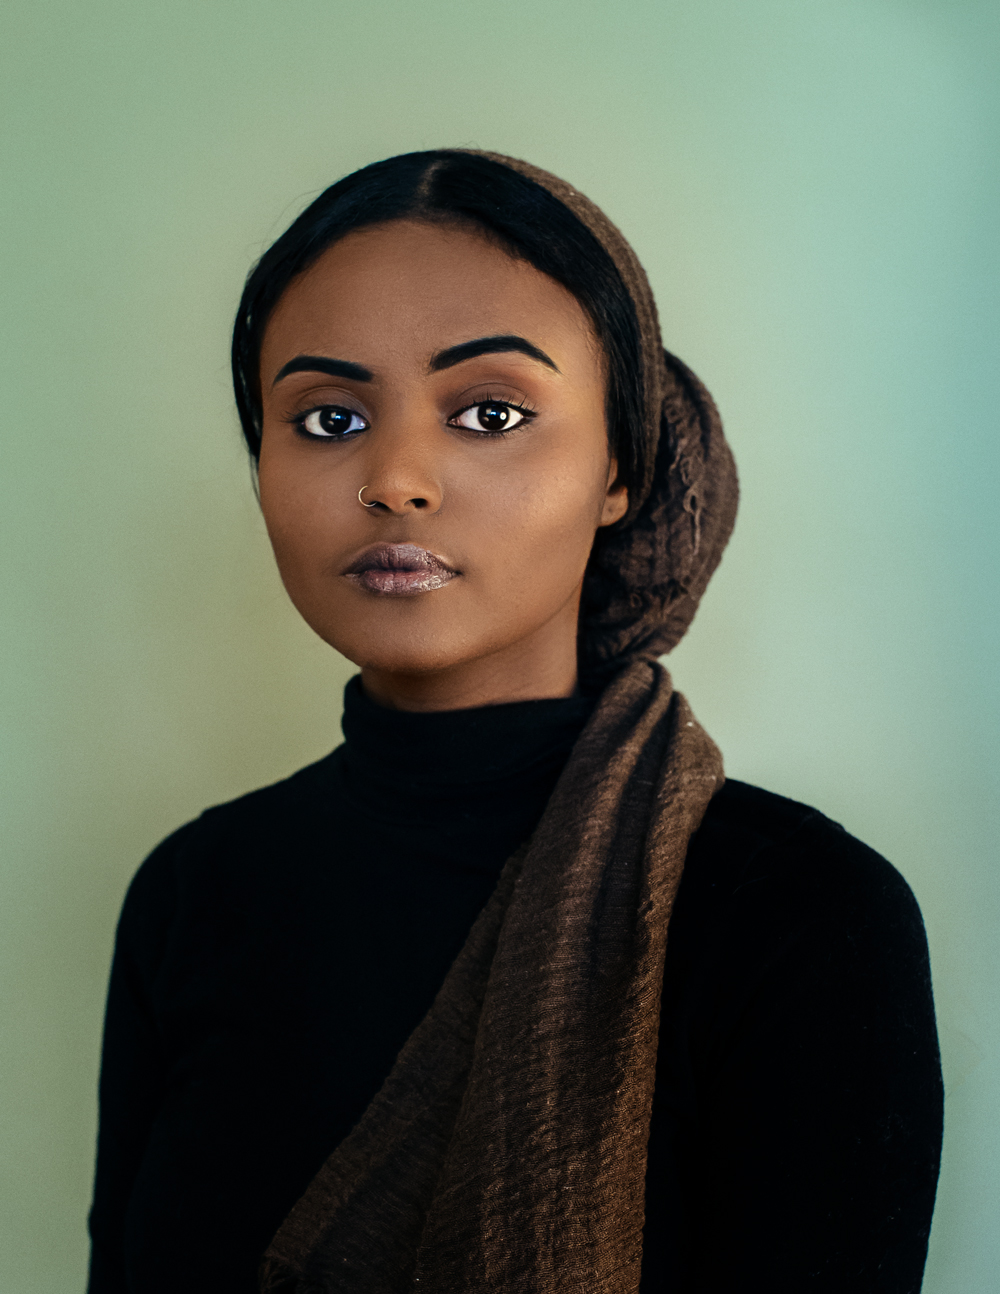 Amina Hassan photographed by Bobby Rogers